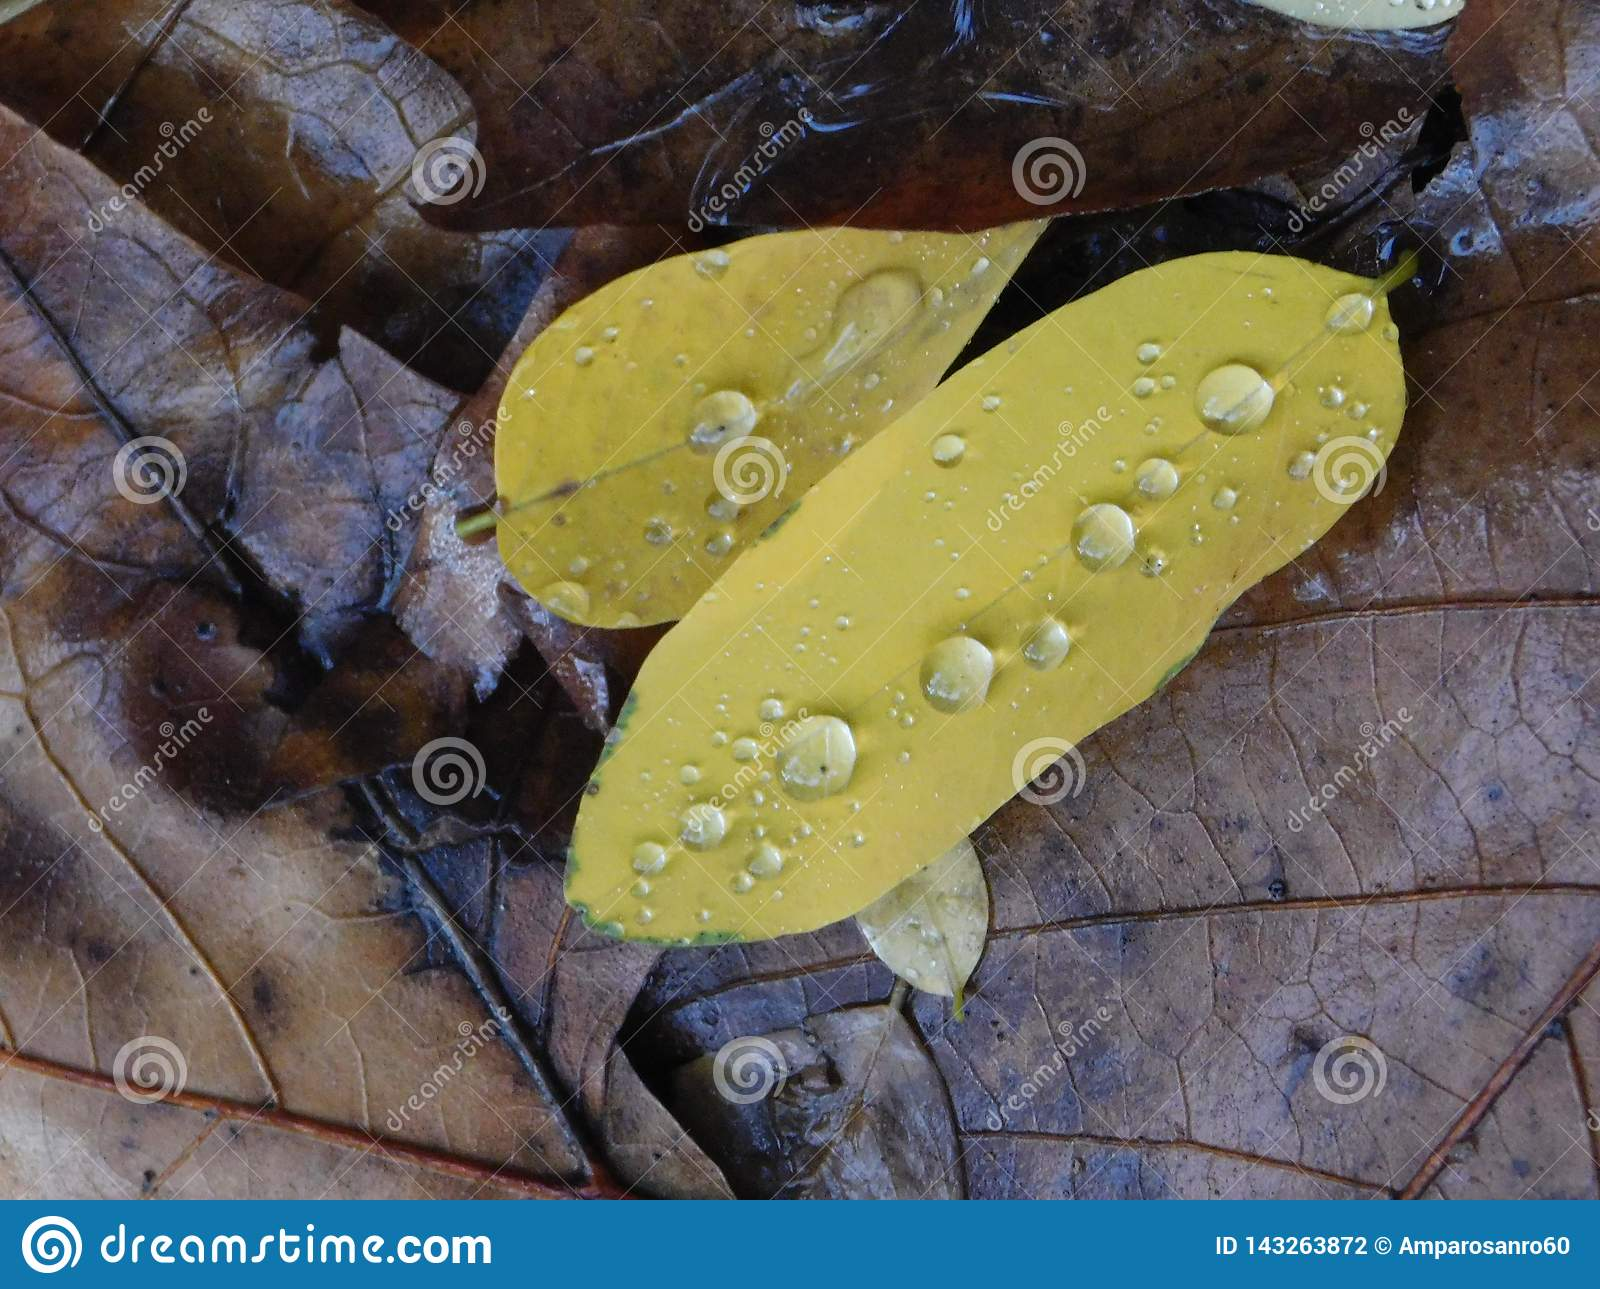 Raindrops on green leaves over wet brown leaves